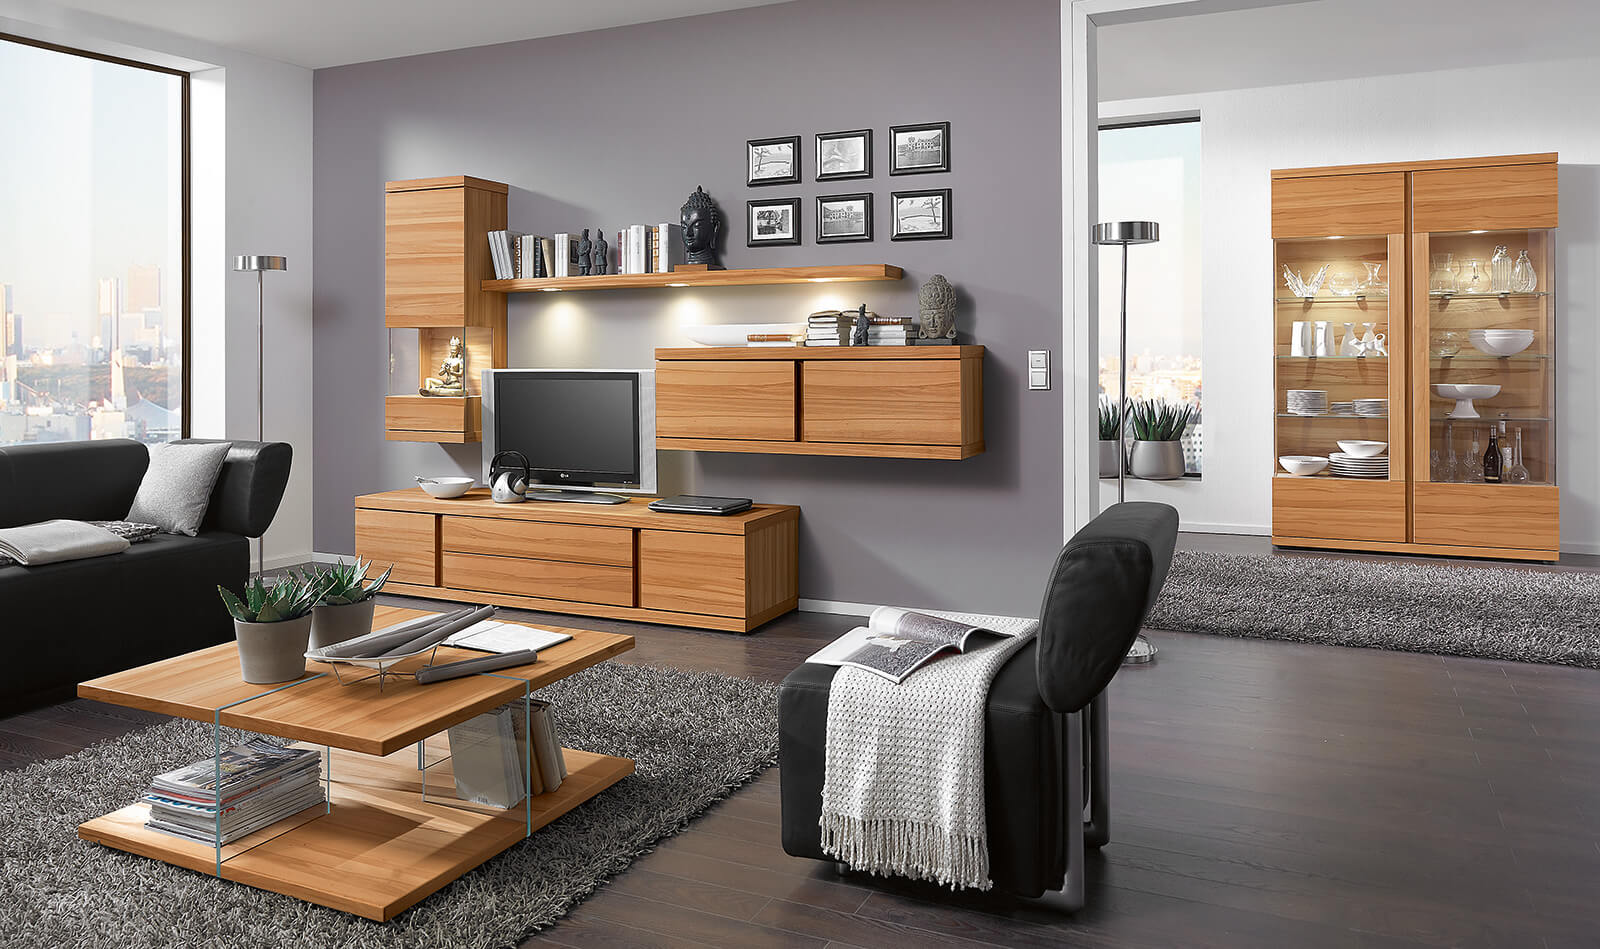 best wohnzimmer design programm pictures house design ideas. Black Bedroom Furniture Sets. Home Design Ideas